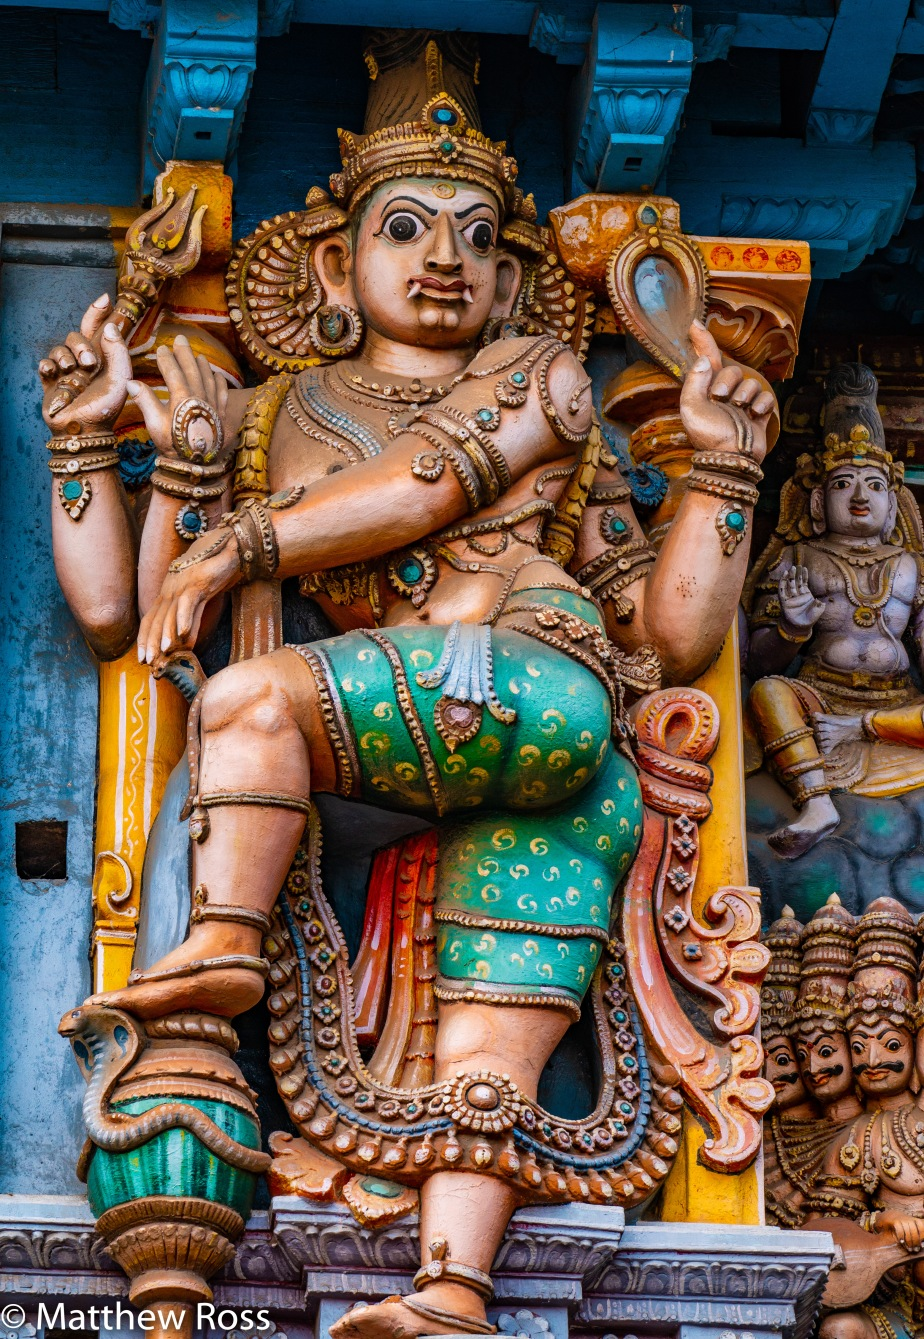 LORD SHIVA, THE DESTROYER (ORTRANSFORMER)